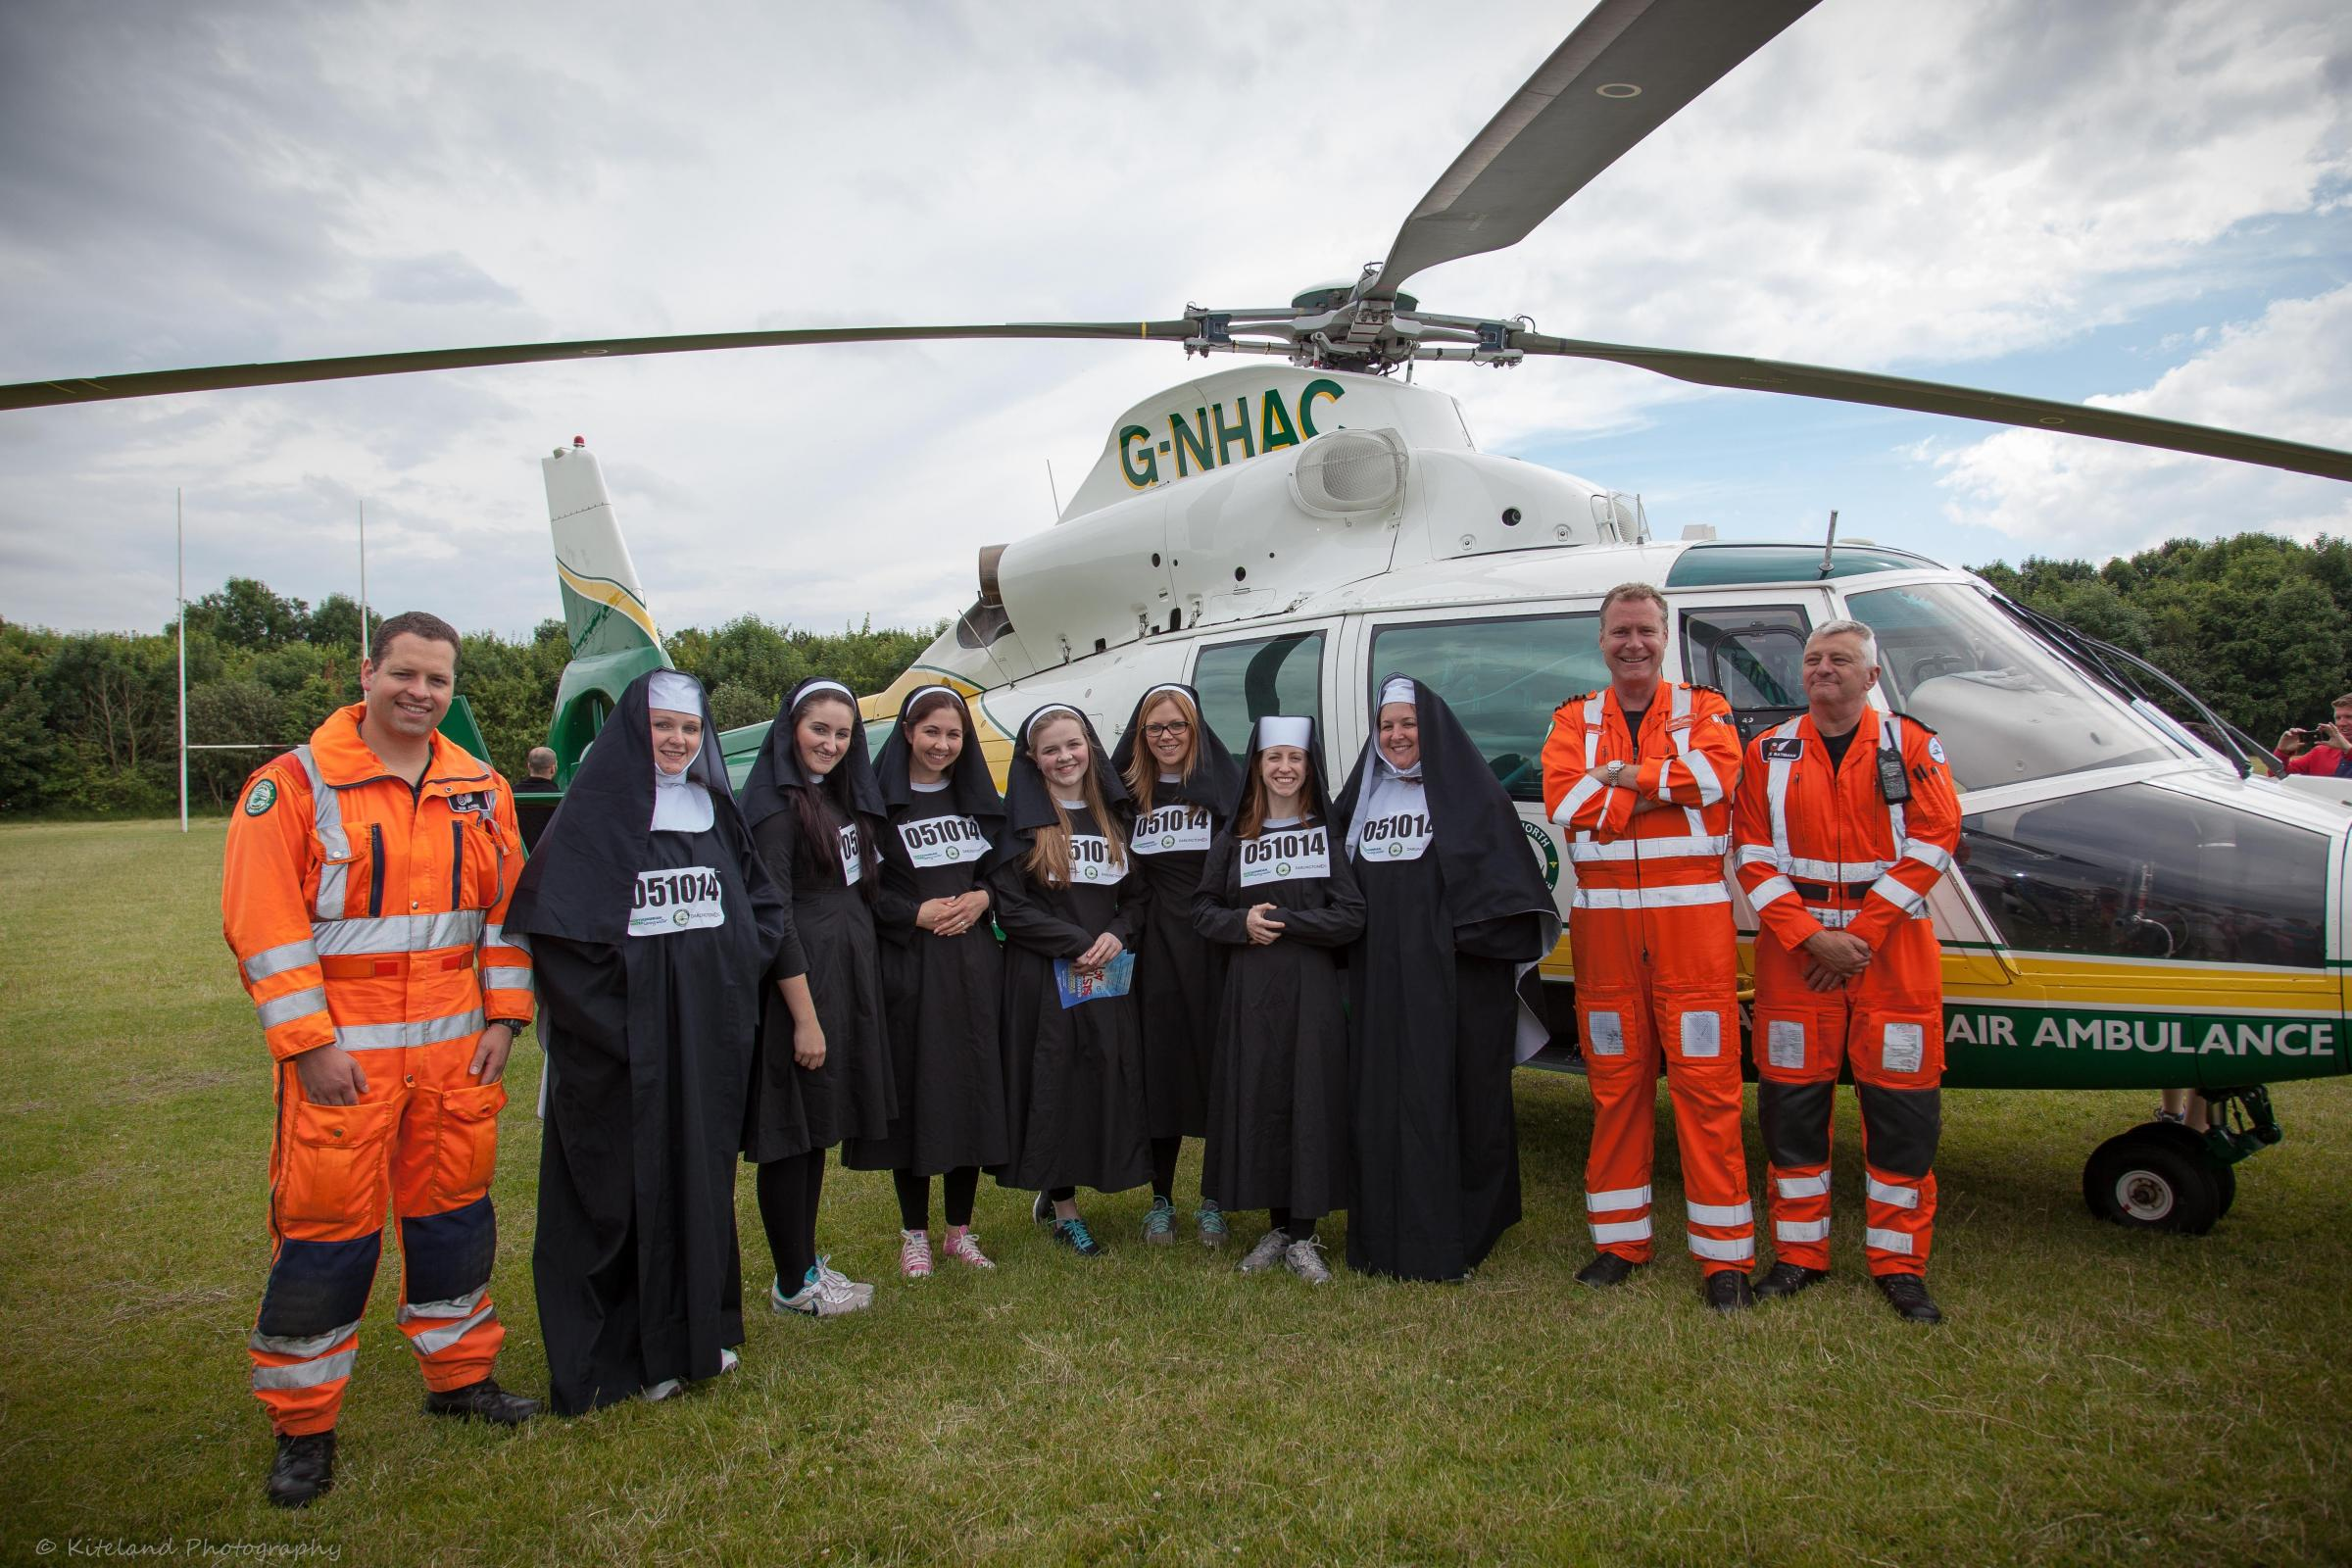 NUN RUN: People are being encouraged to dress up as nuns and run 5k to raise money for the Great North Air Ambulance Service. Picture: Peter Springhall